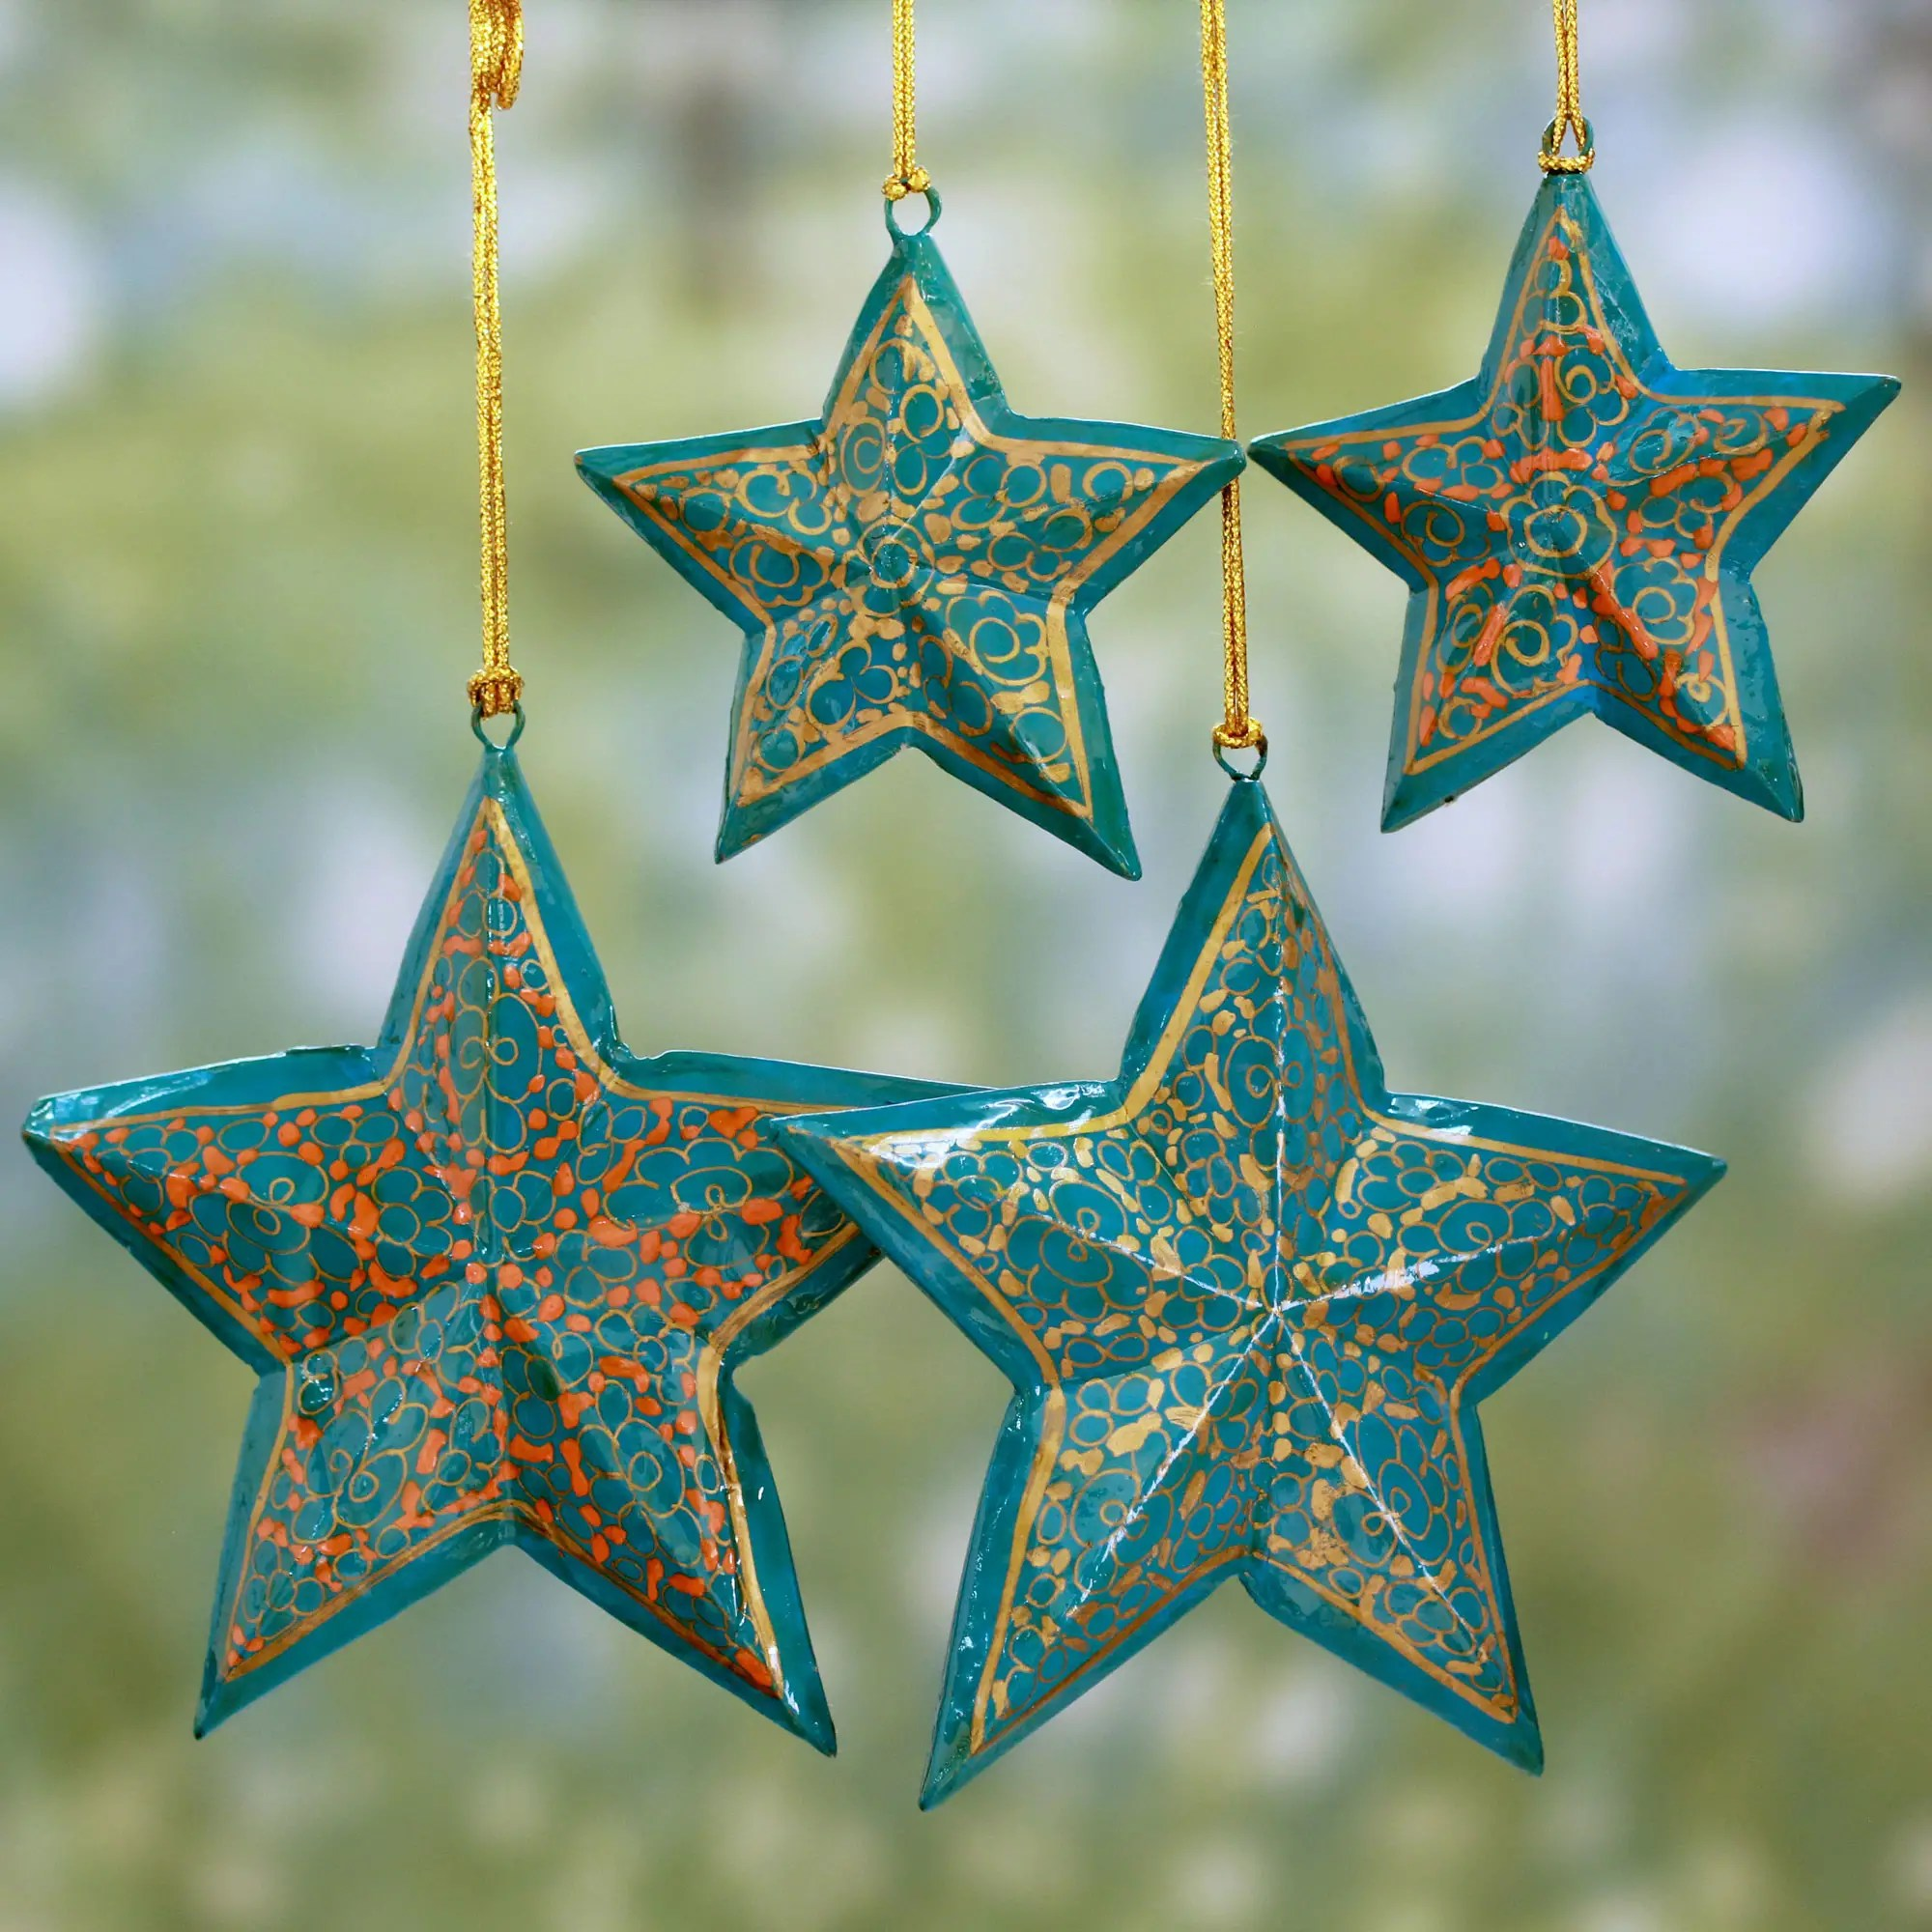 Pantone Christmas Ornaments Handmade Wooden Star Christmas Ornaments Set Of 4 Starry Sky